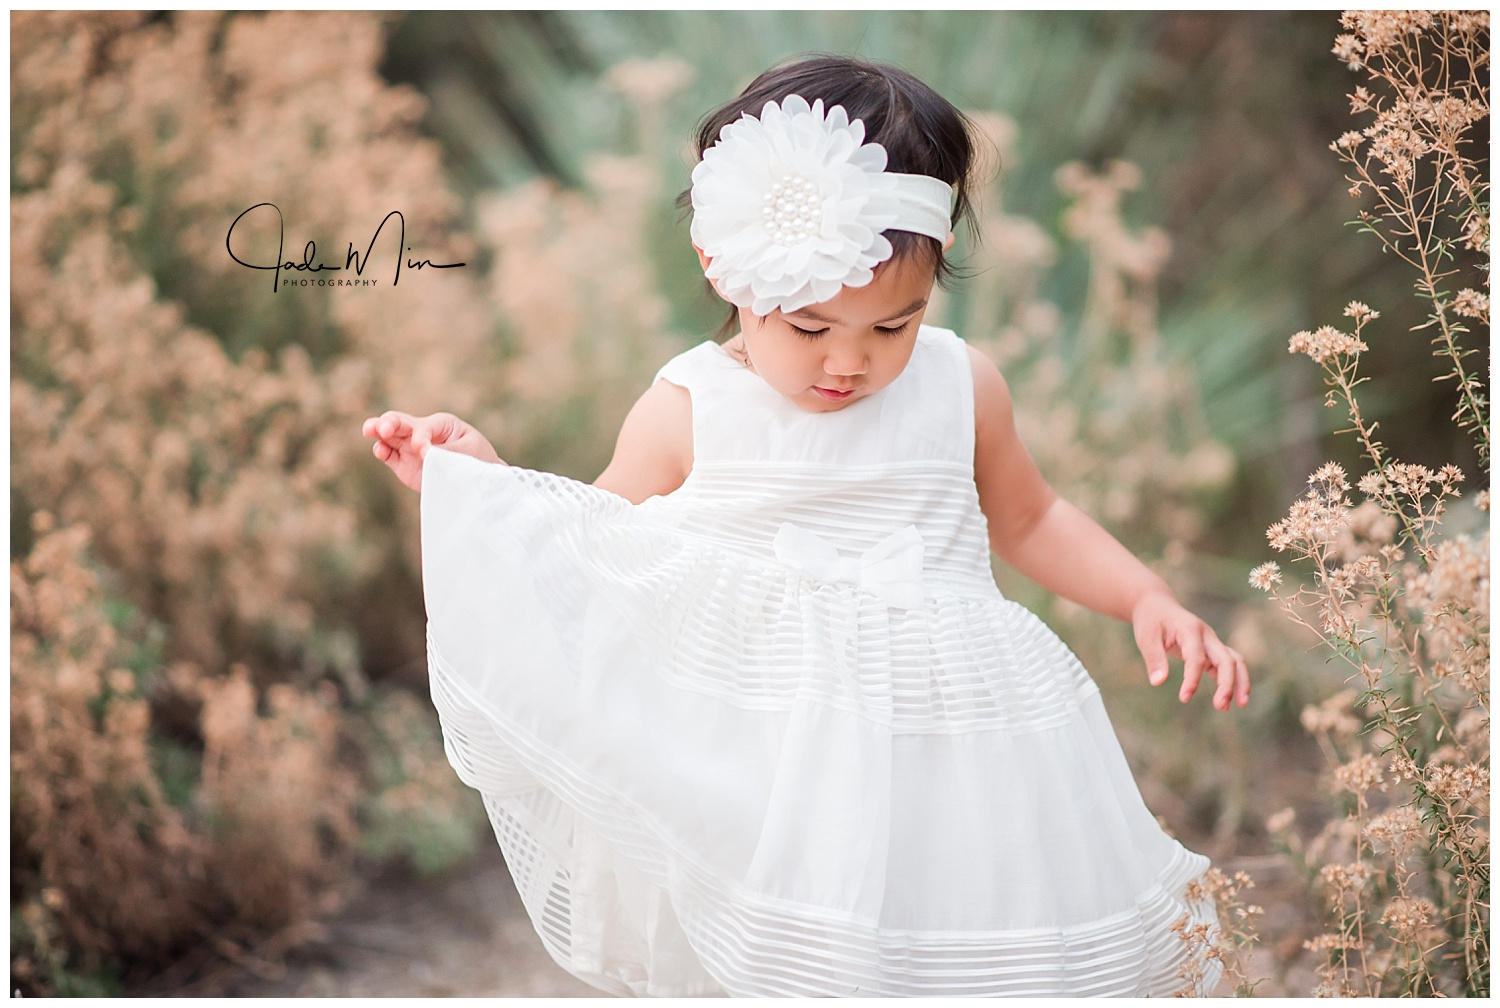 Children's Photography, Little White Dress, Dancing at the Park, Jade Min Photography